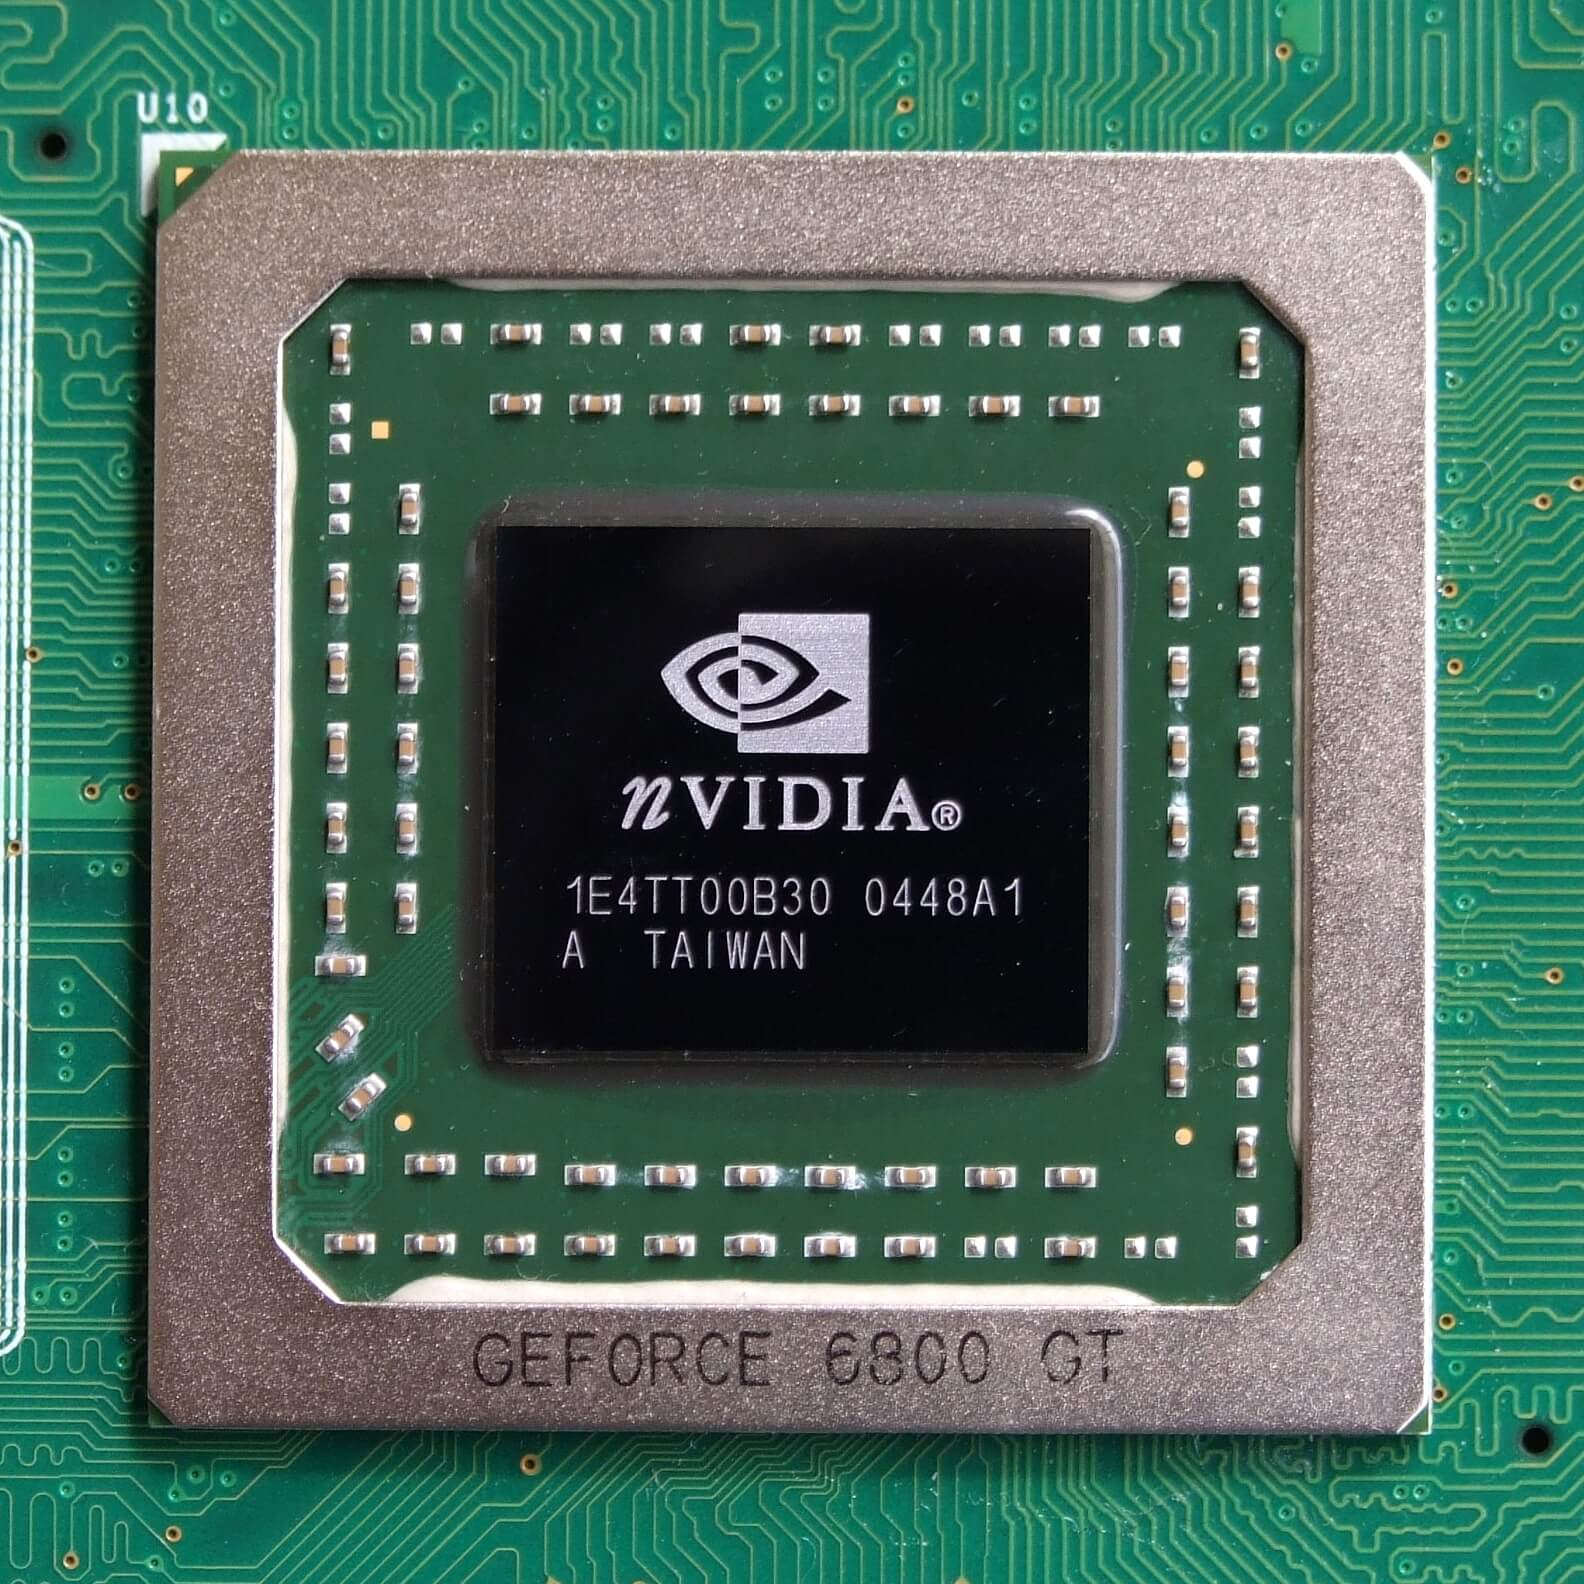 Understanding Few Basic Concepts About The GPU